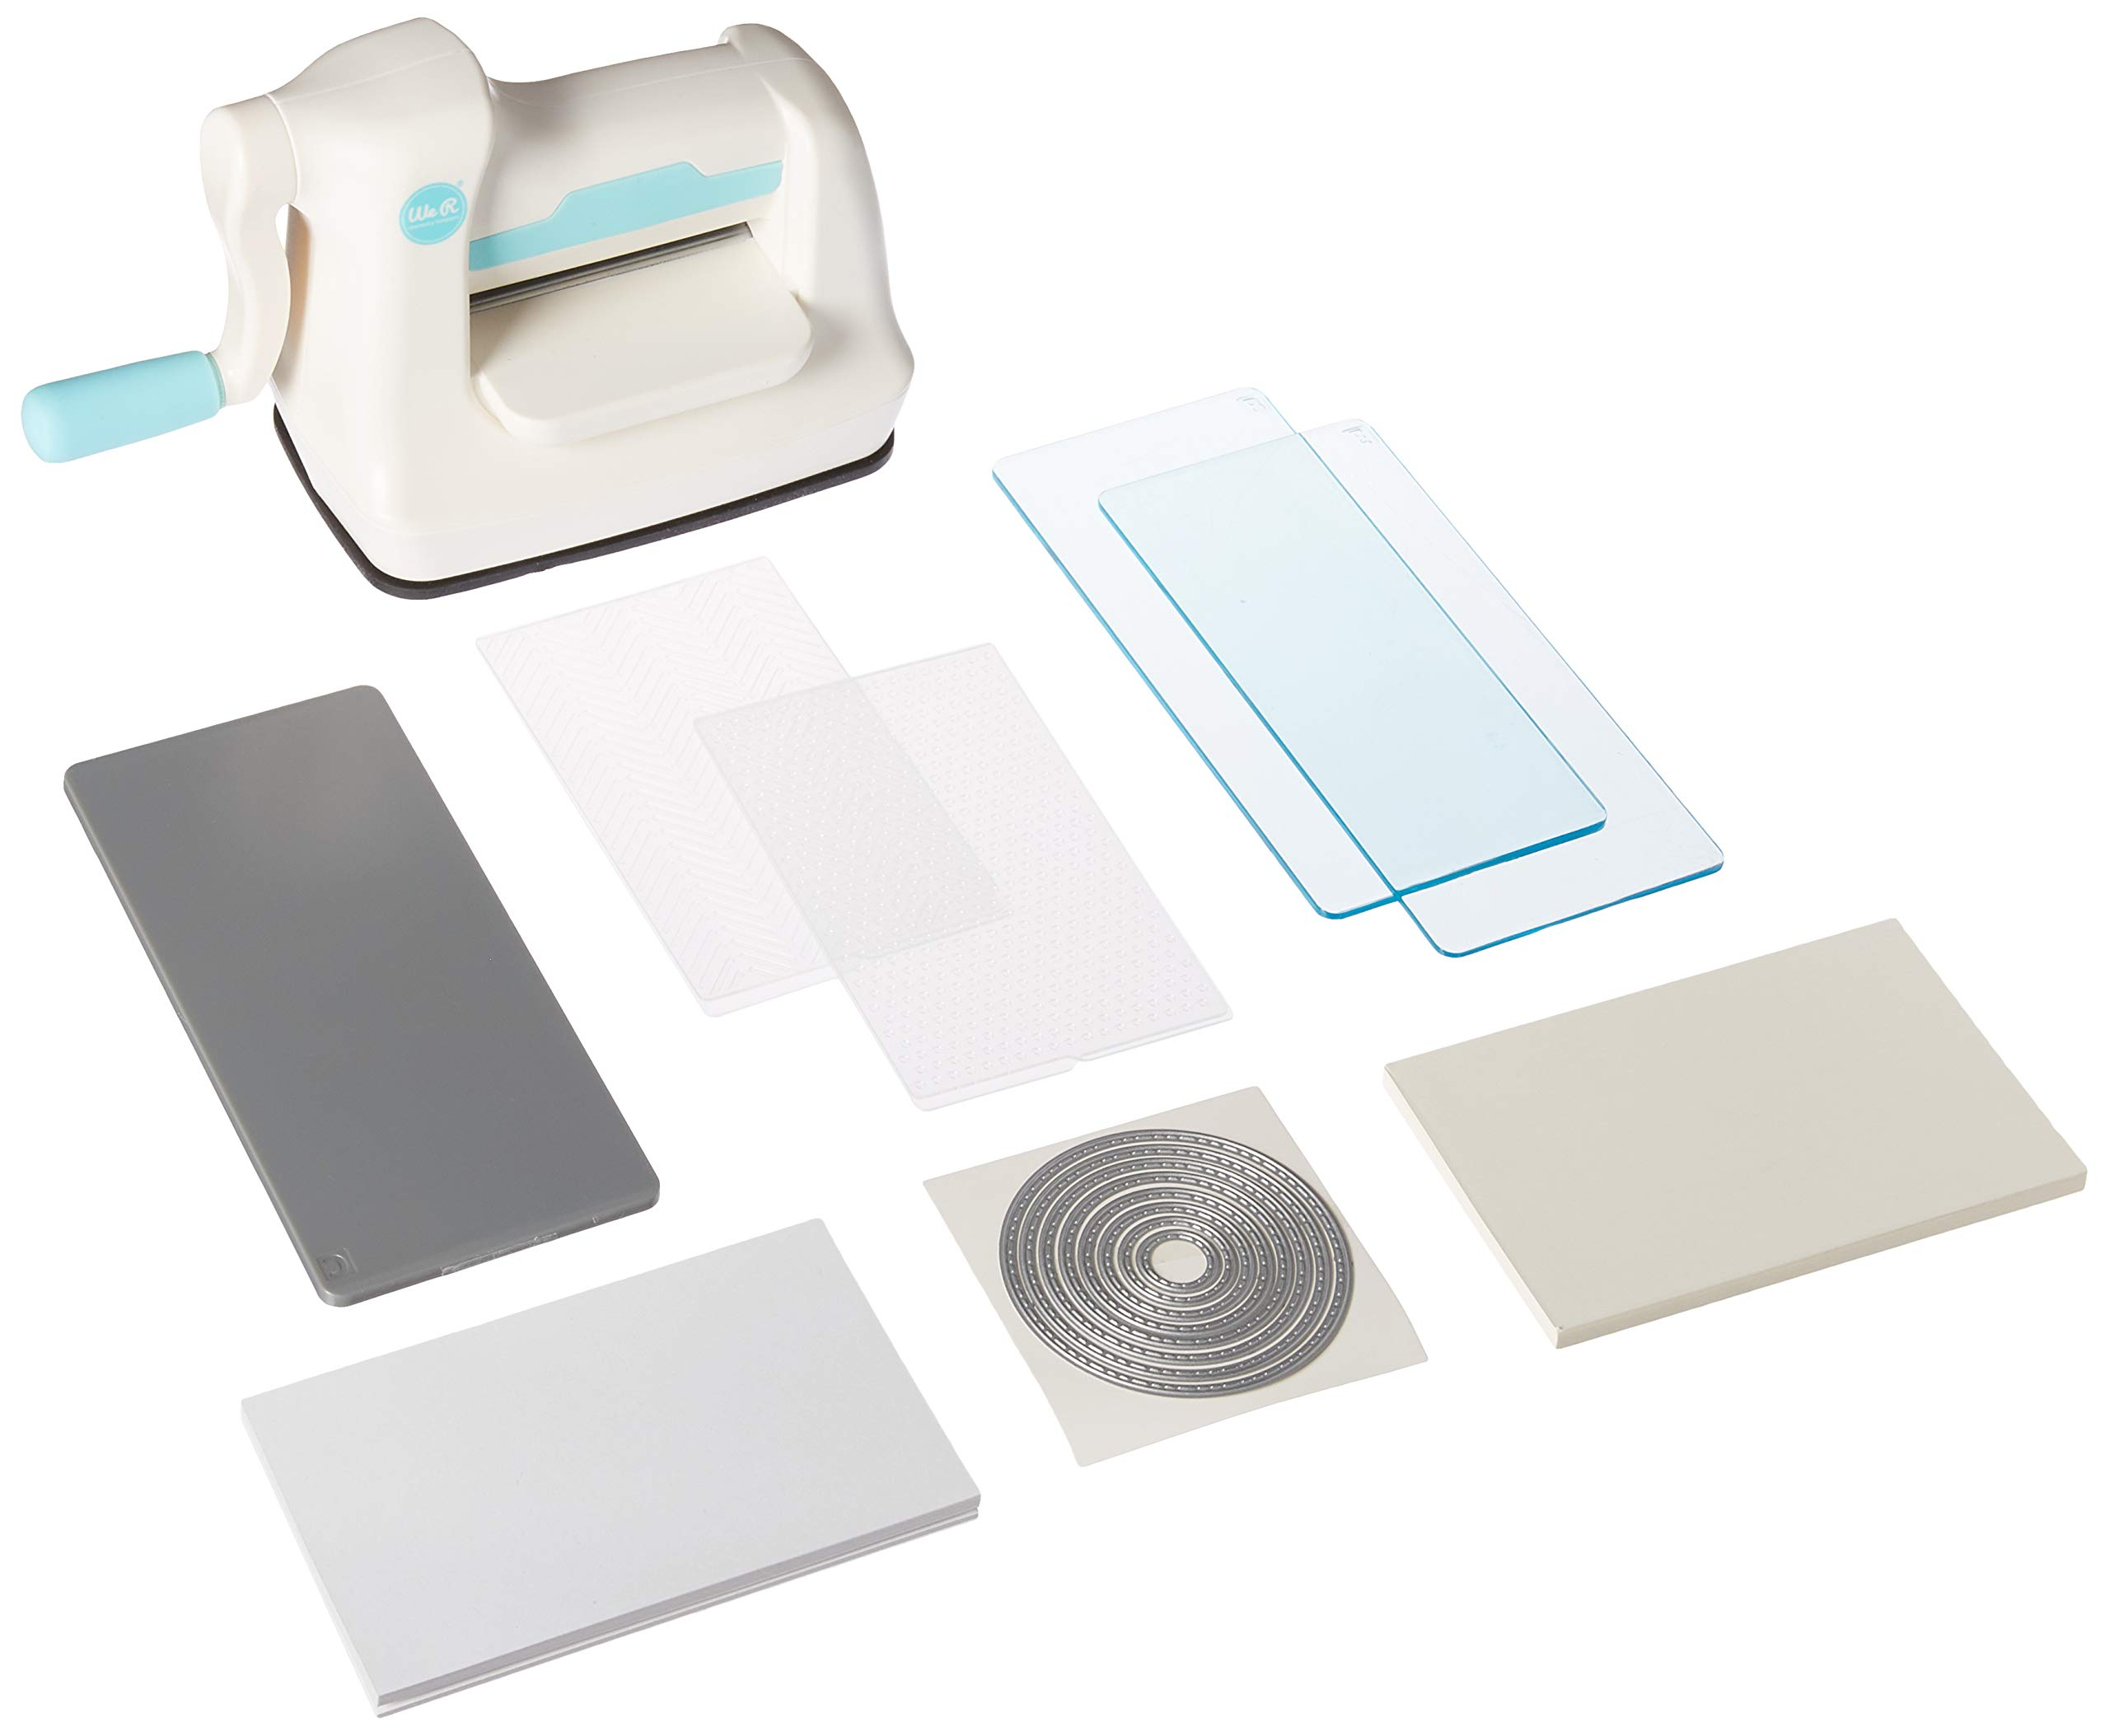 We R Memory Keepers 661629 0633356616290 Tool Mini Evolution Starter Kit-Machine Buffer Cutting Plate Embossing (64 Piece), White, Blue by We R Memory Keepers